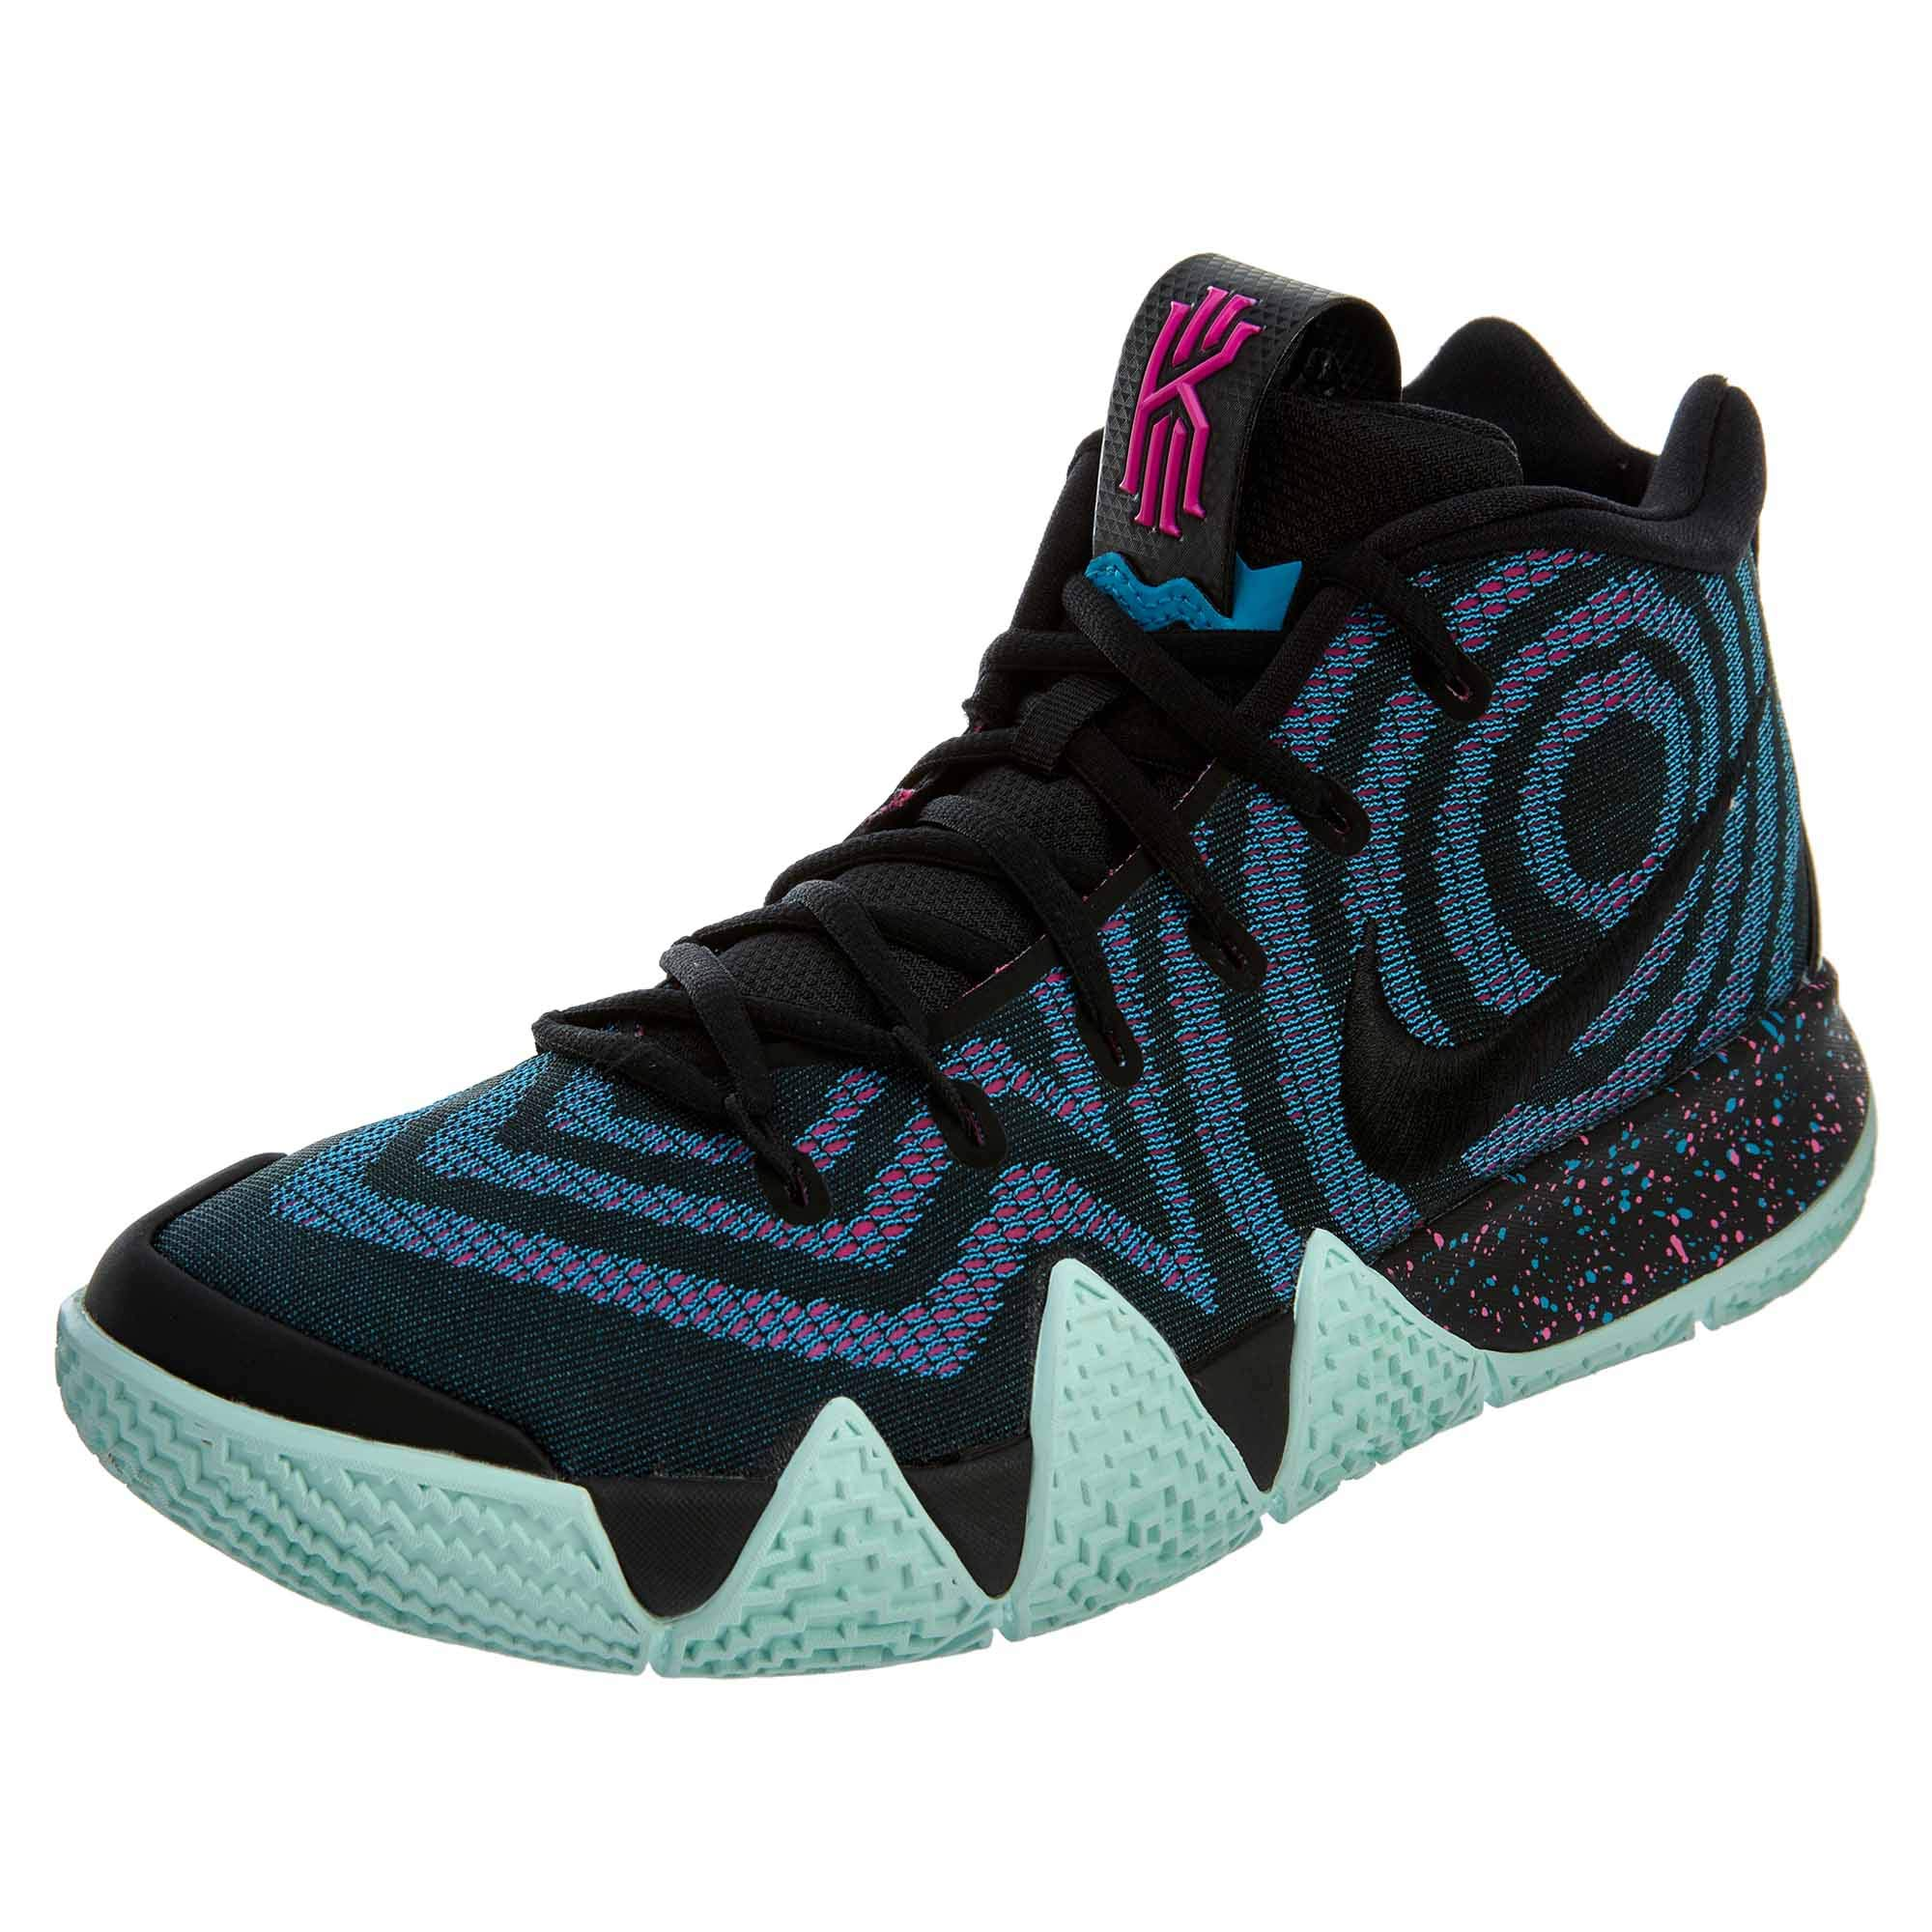 d5742f6d4b49 Galleon - Nike Men s Kyrie 4 Basketball Shoes (9